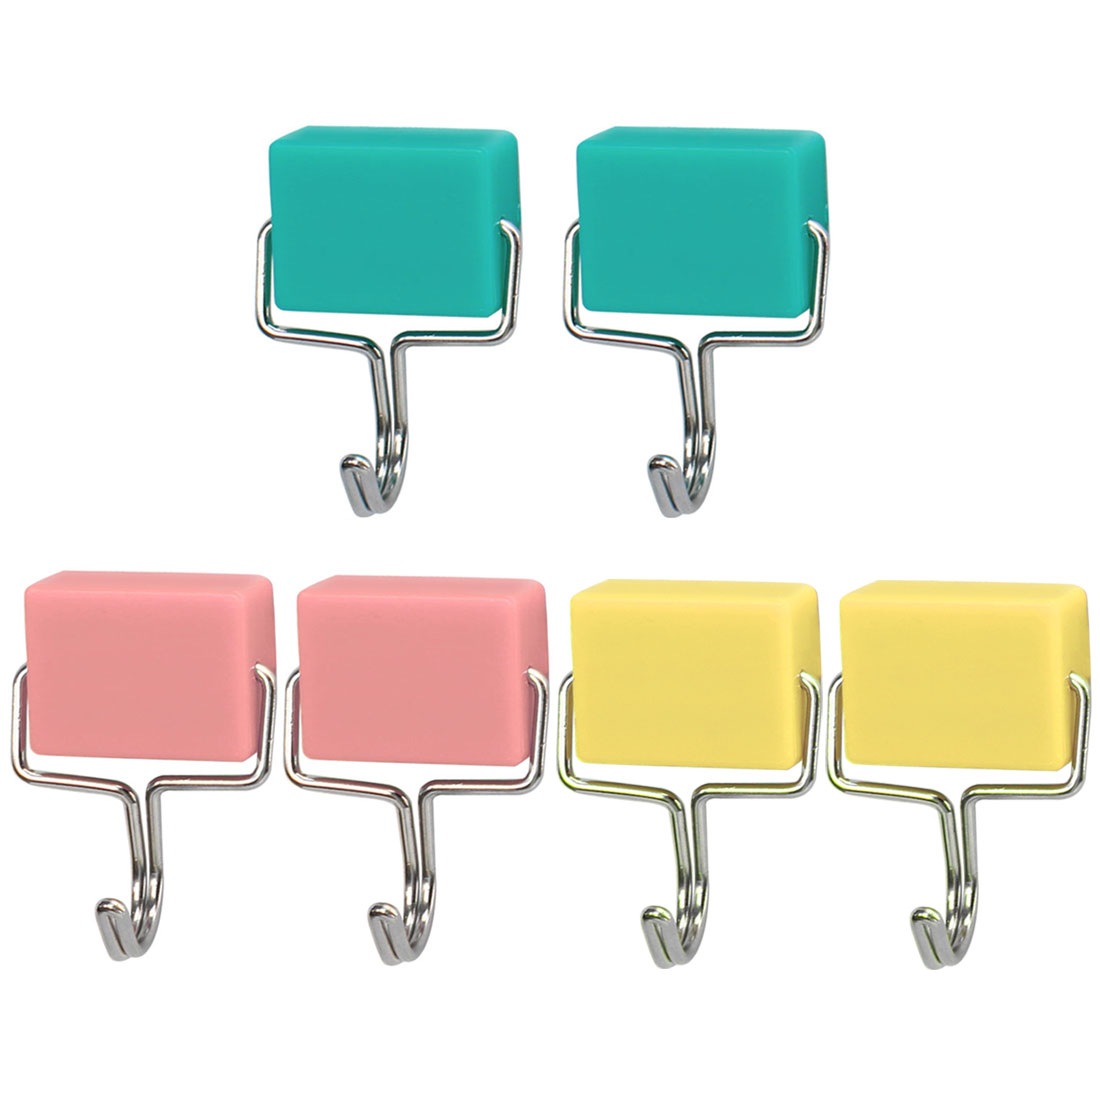 6pcs Magnetic Hook Towel Wall Hook for Coat Hat Holder Pink Yellow Green